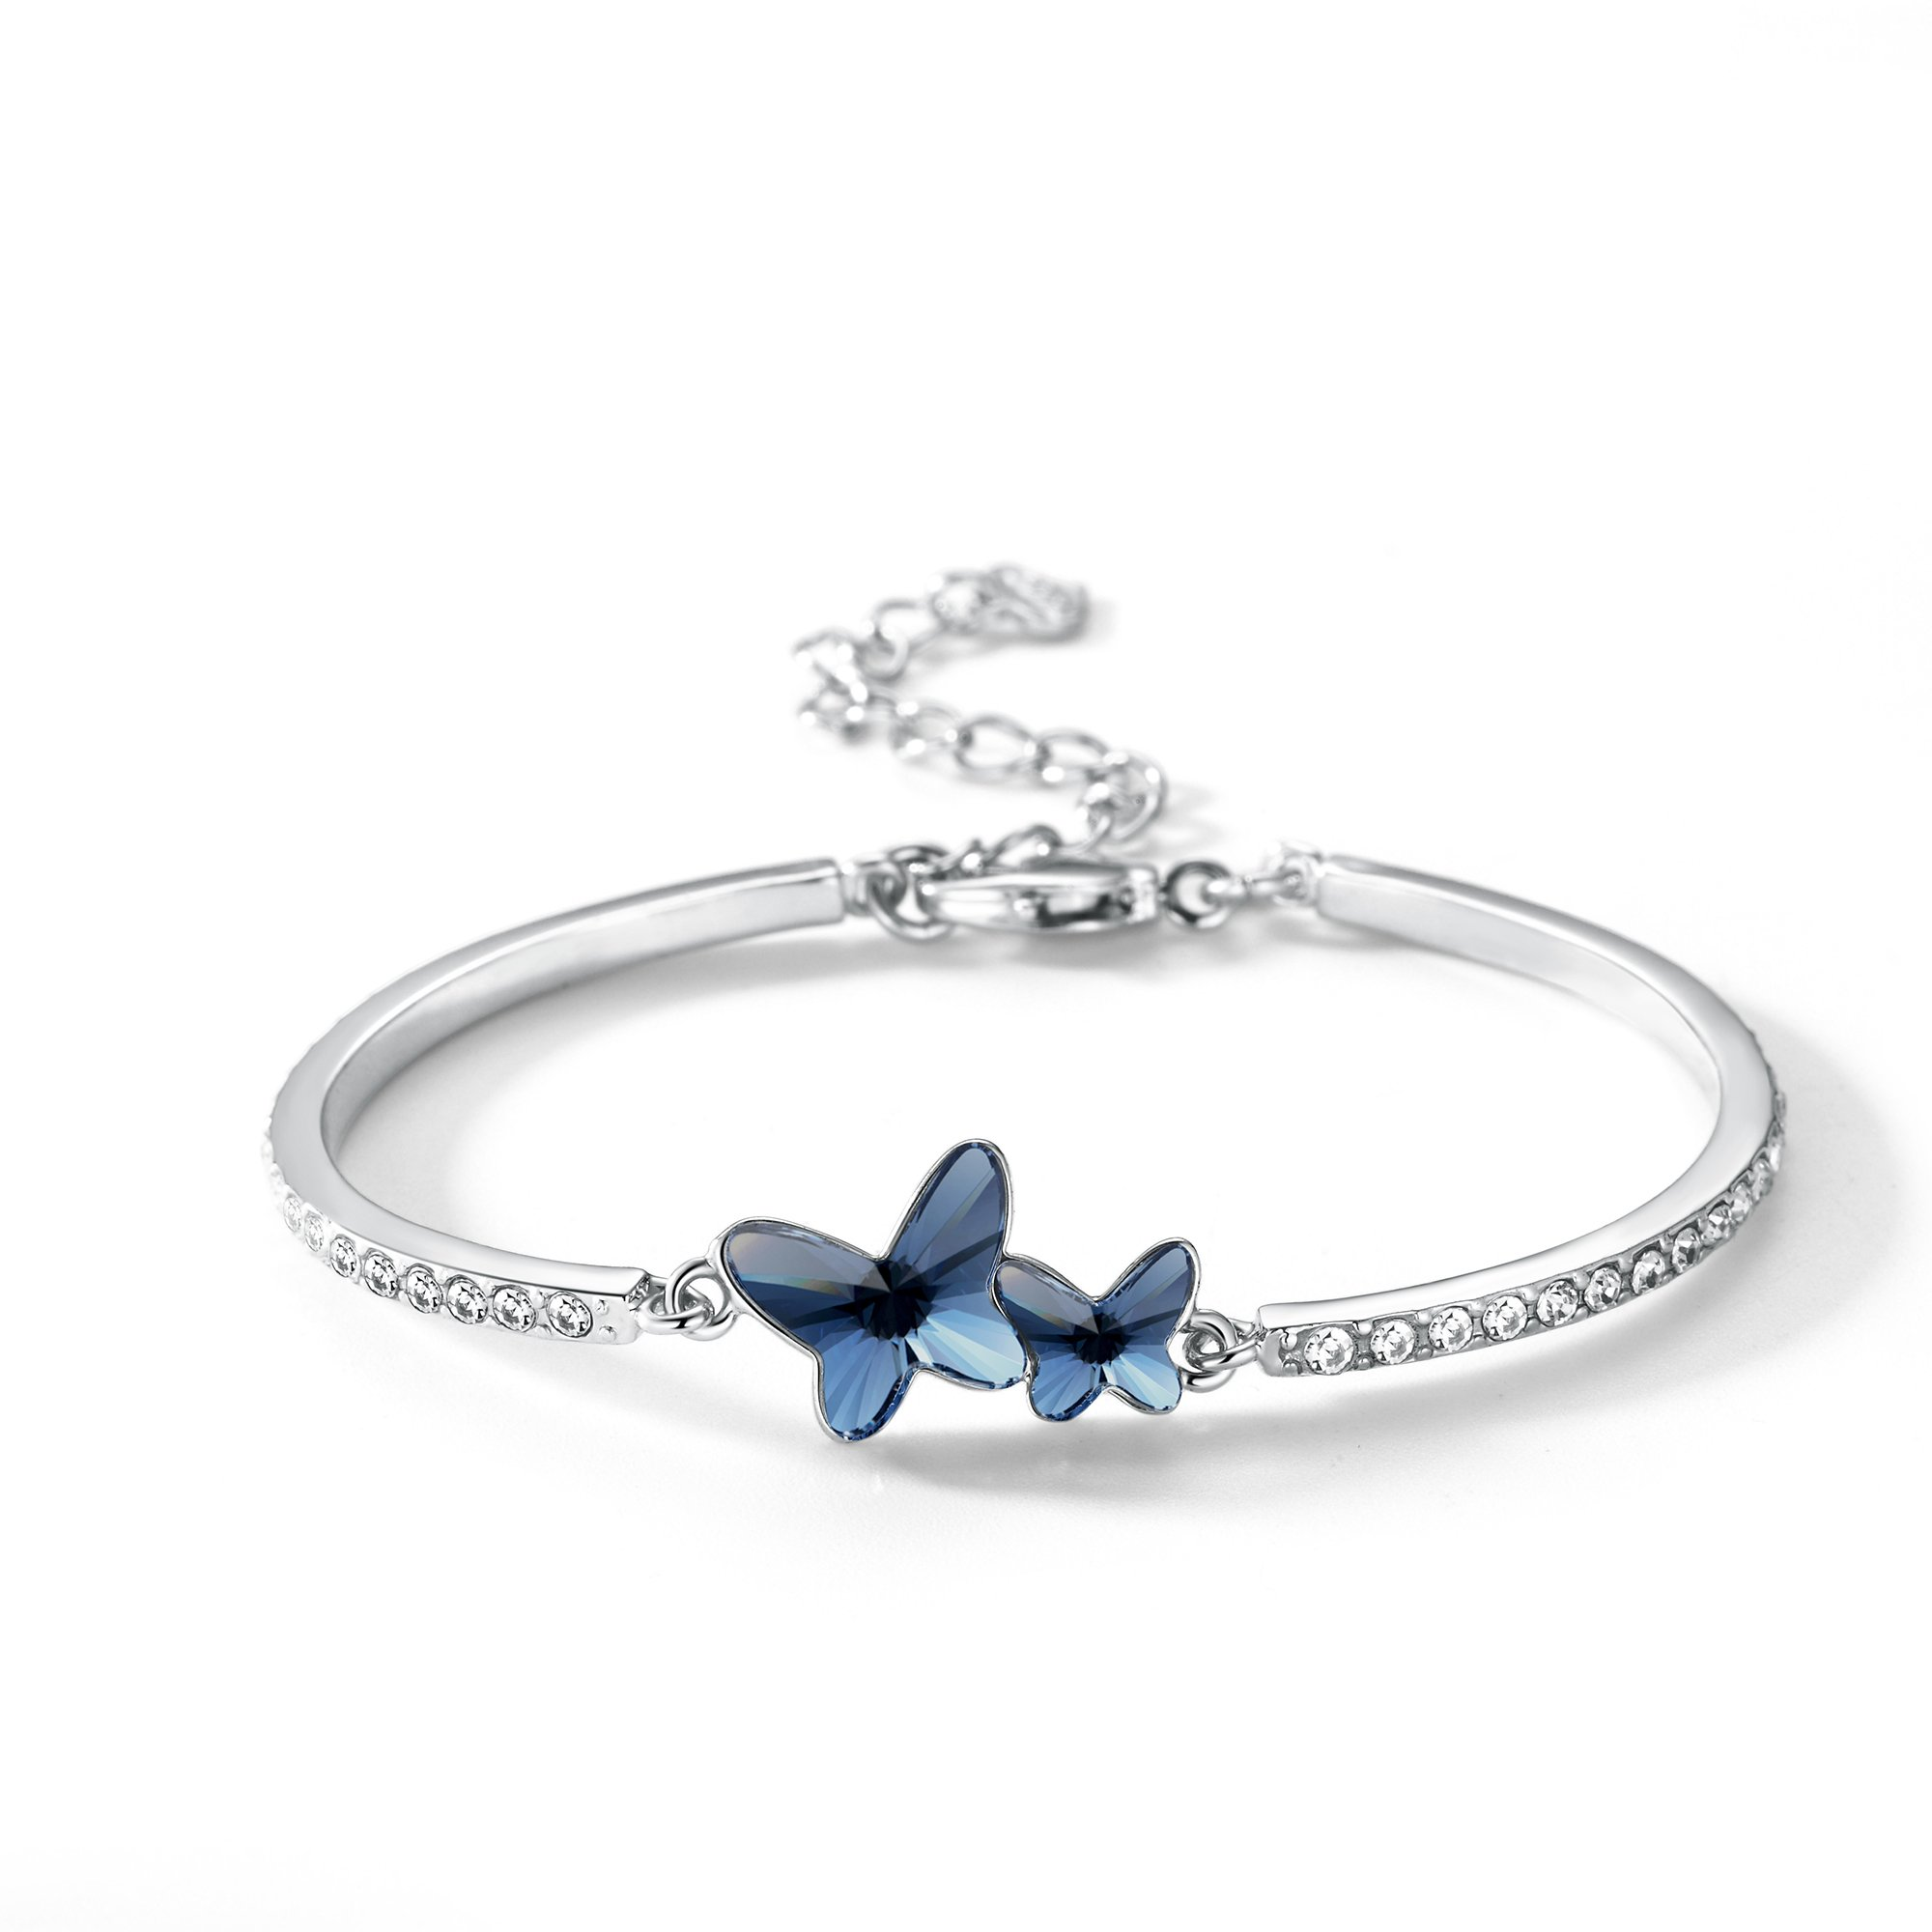 T400 Blue Purple Pink Butterfly Bangle Bracelet Made with Swarovski Elements Crystal❤️ Birthday Gift for Women Girls by T400